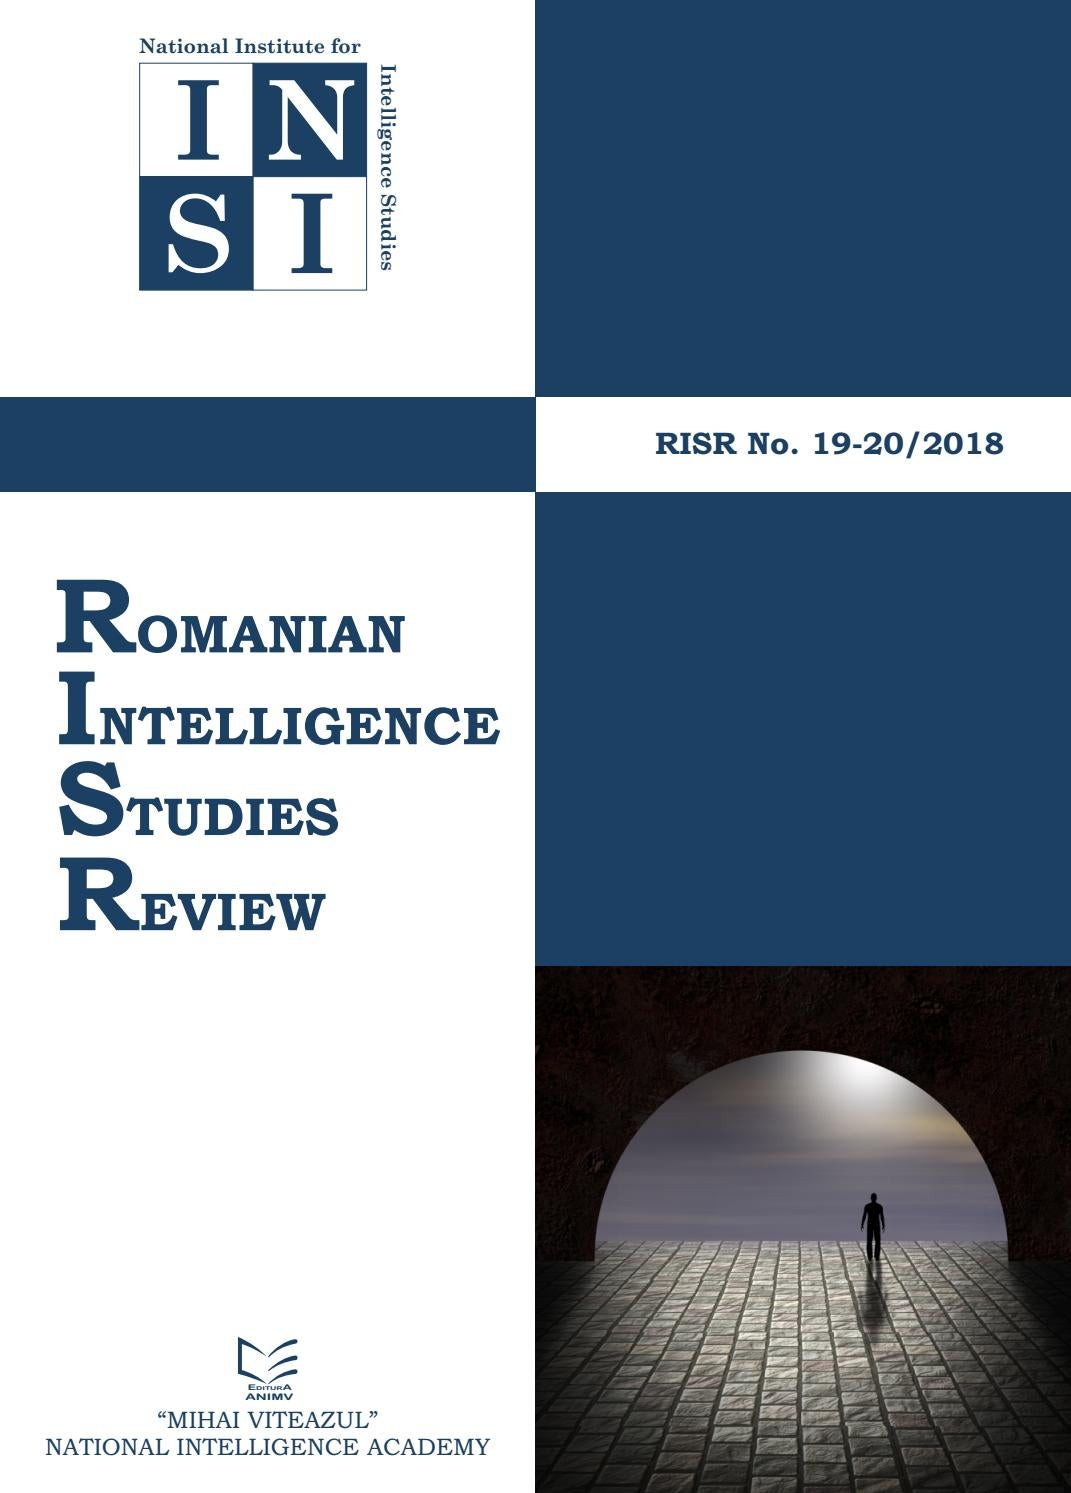 RRSI 19 - 20 by ANIMV - issuu